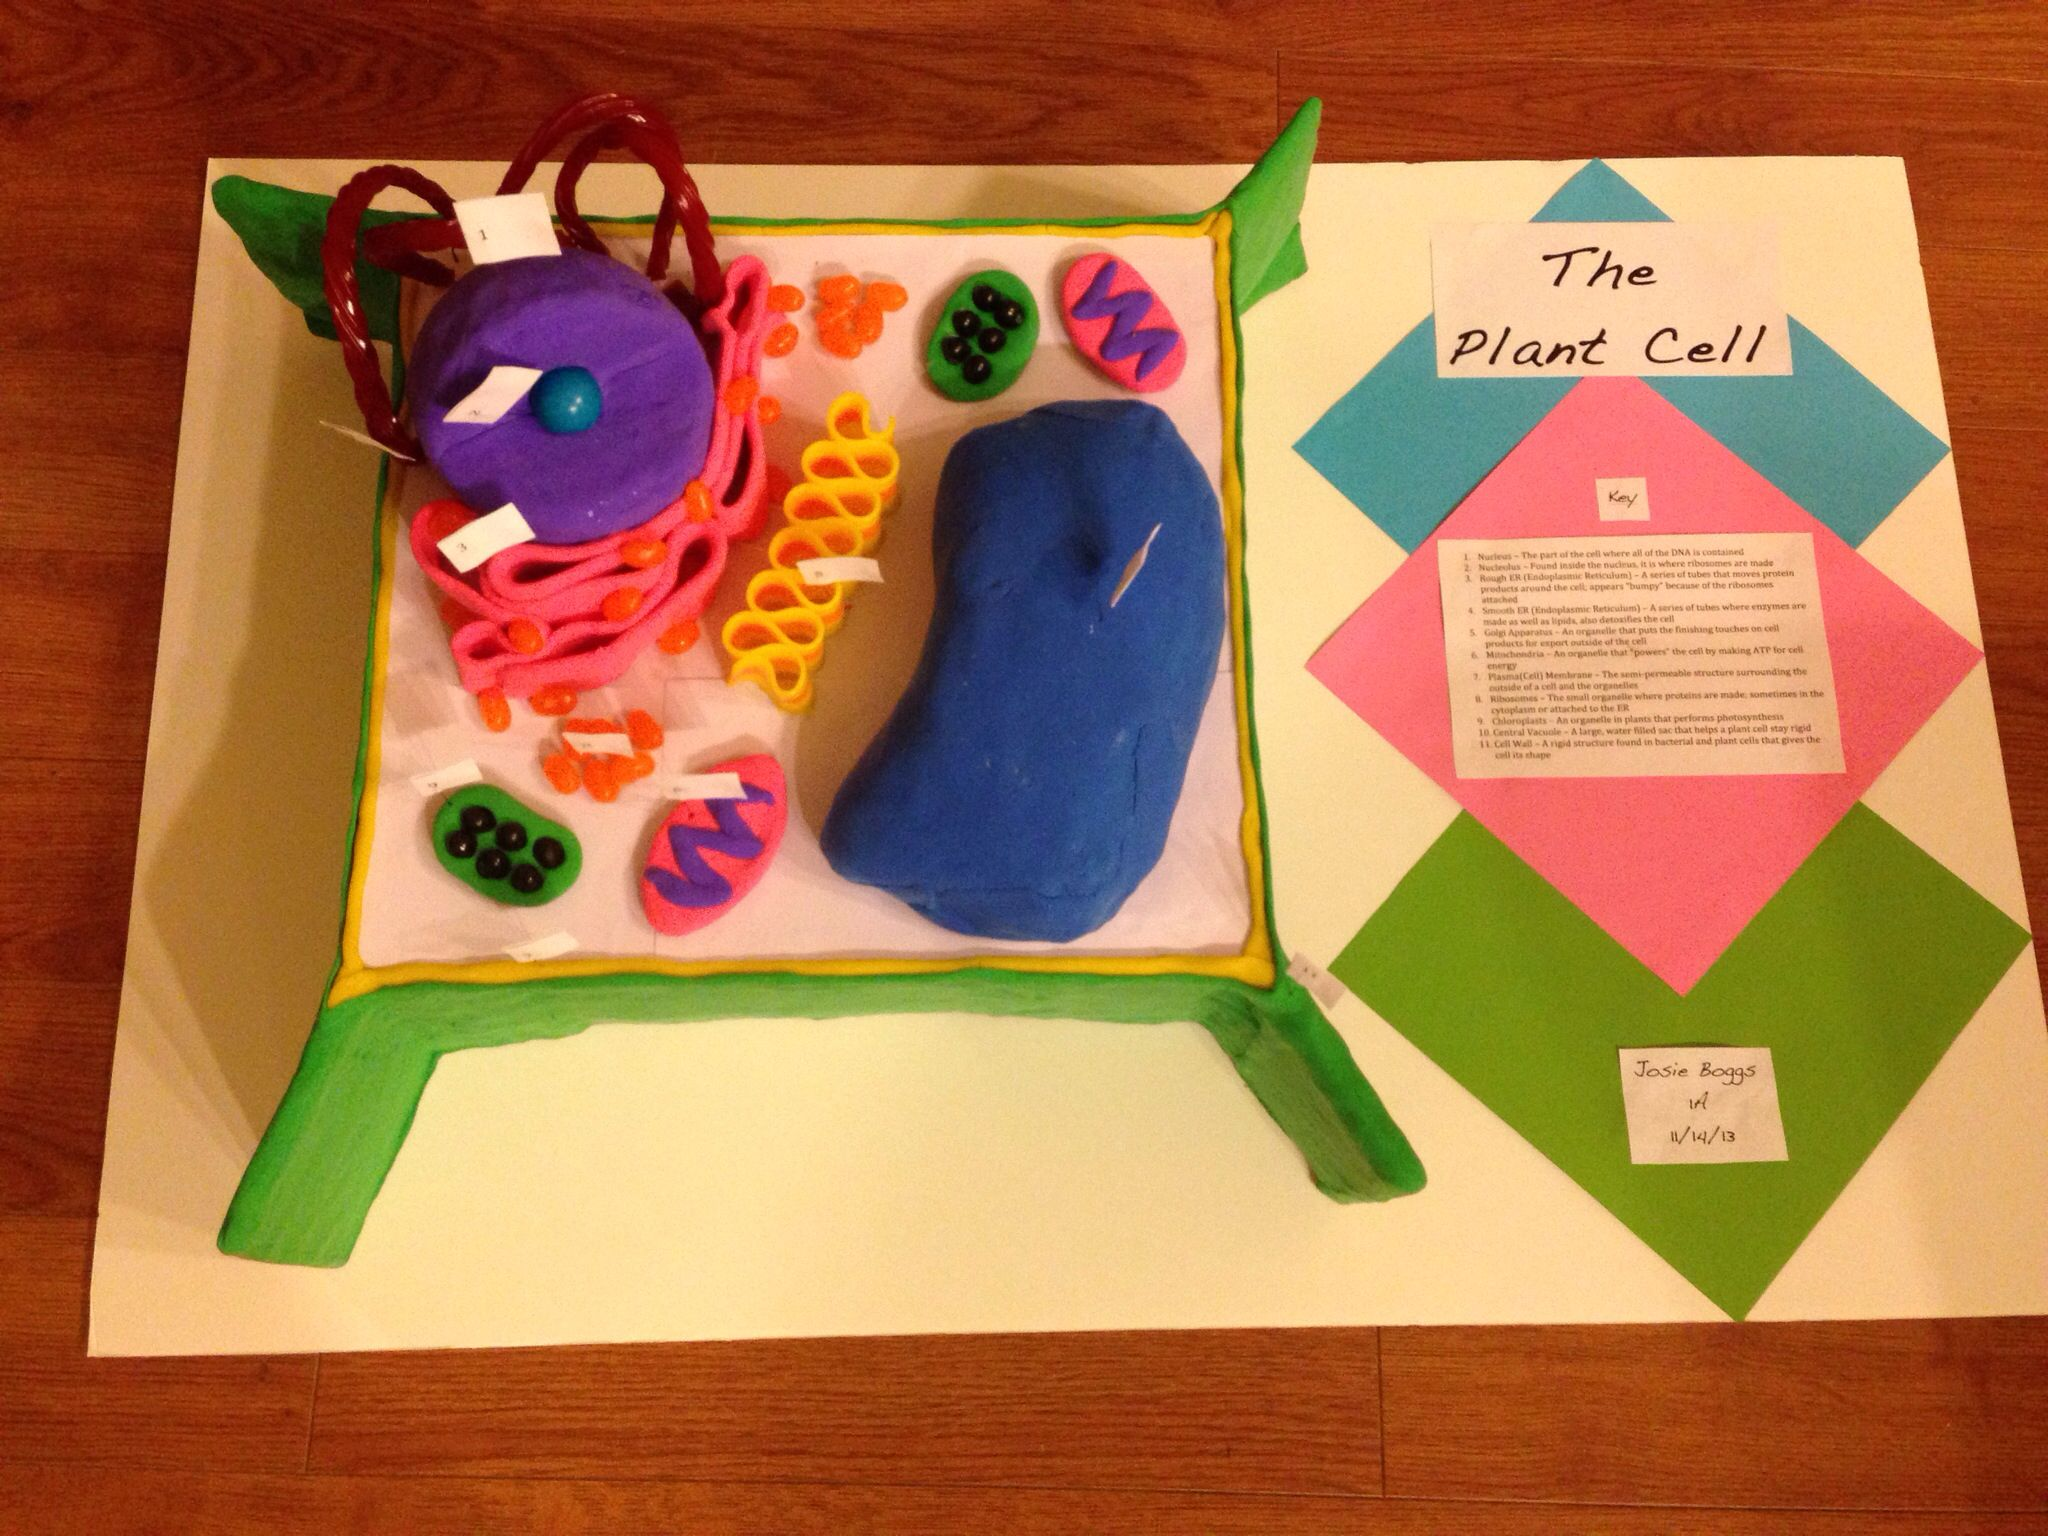 Plant Cell Science Projects And On Pinterest Diagram 3d Model Project 10th Grade